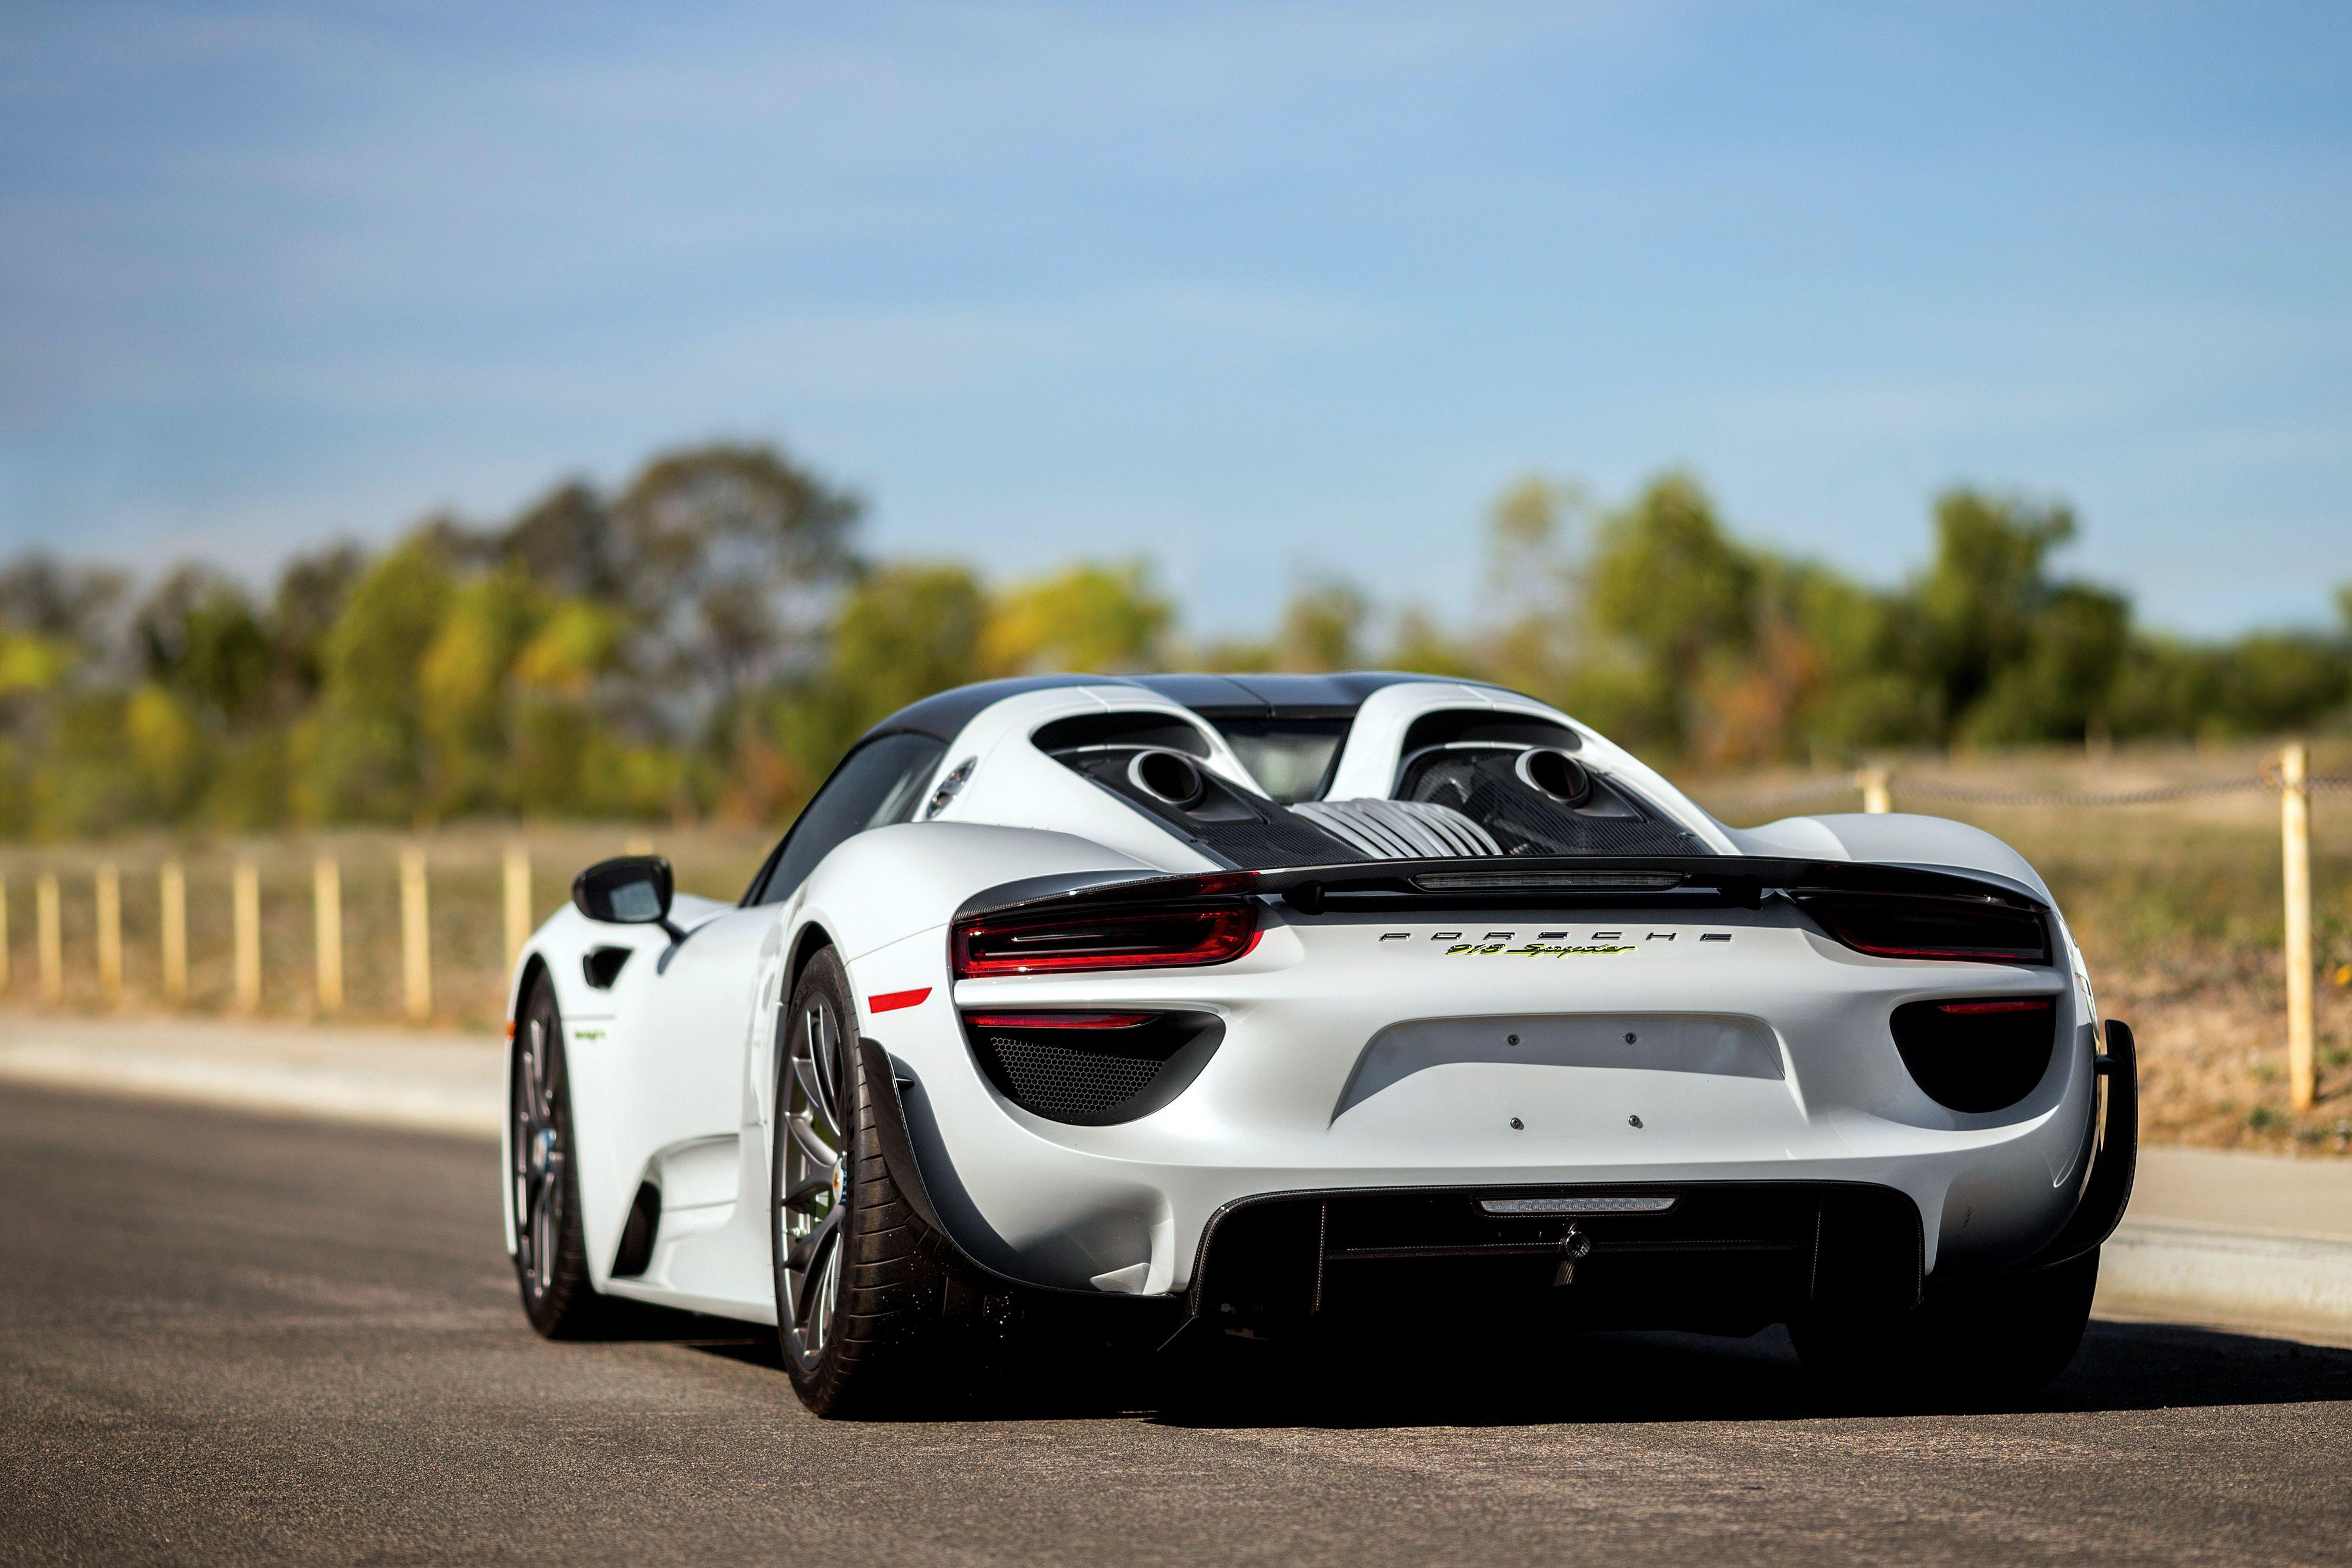 59 Porsche 918 Spyder HD Wallpapers | Background Images ...